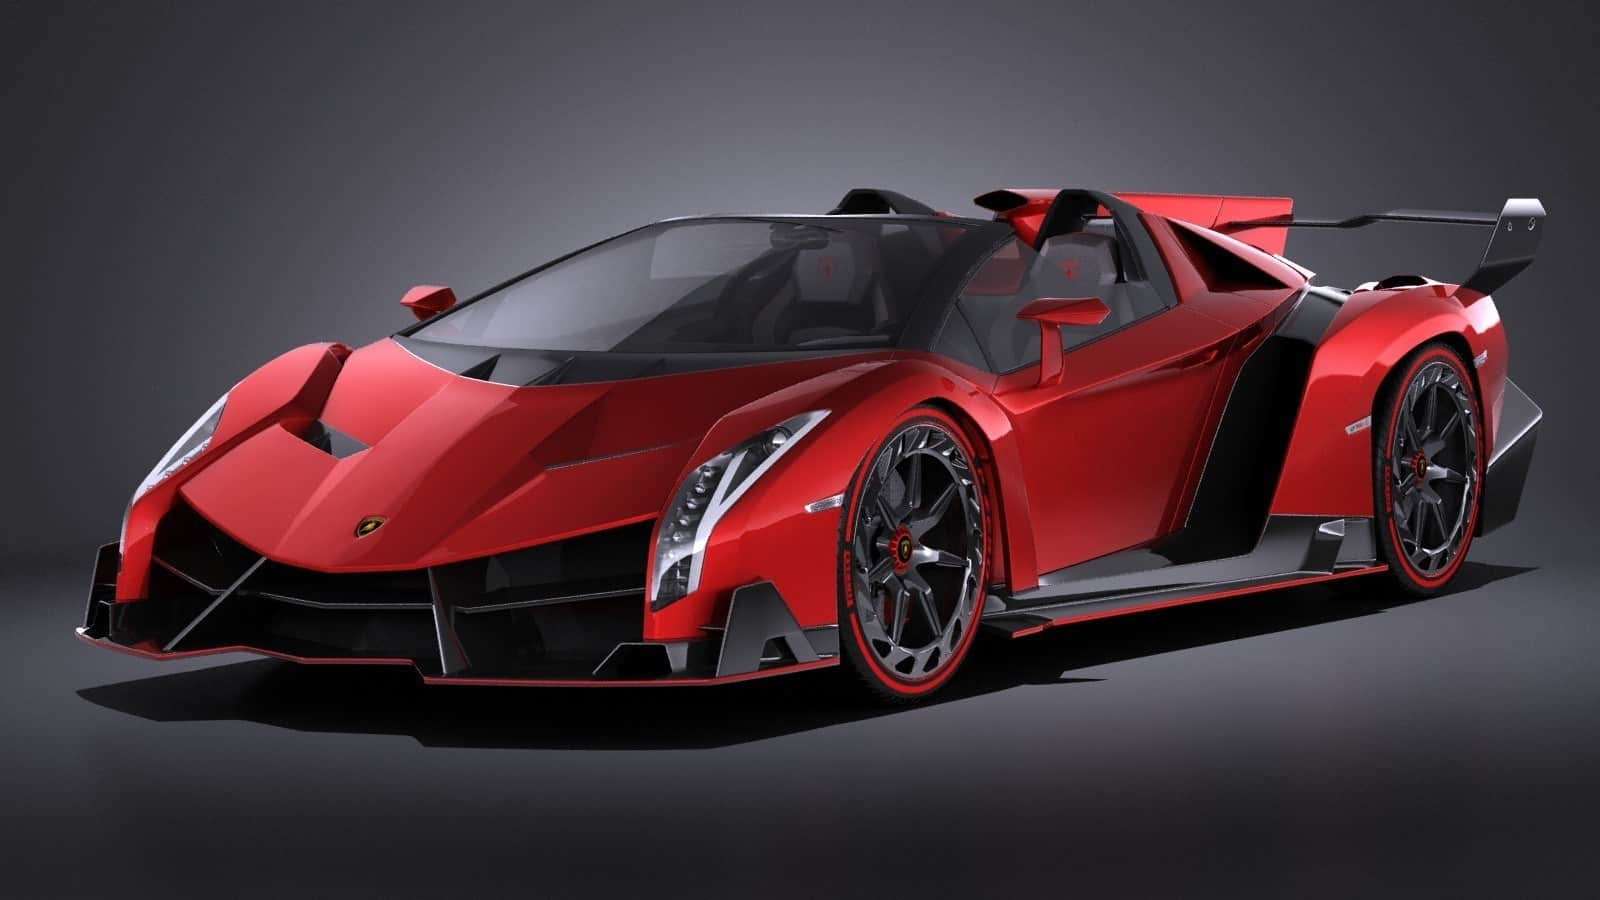 Sports Cars For Sale >> Ranking The Most Expensive Sports Cars In The World